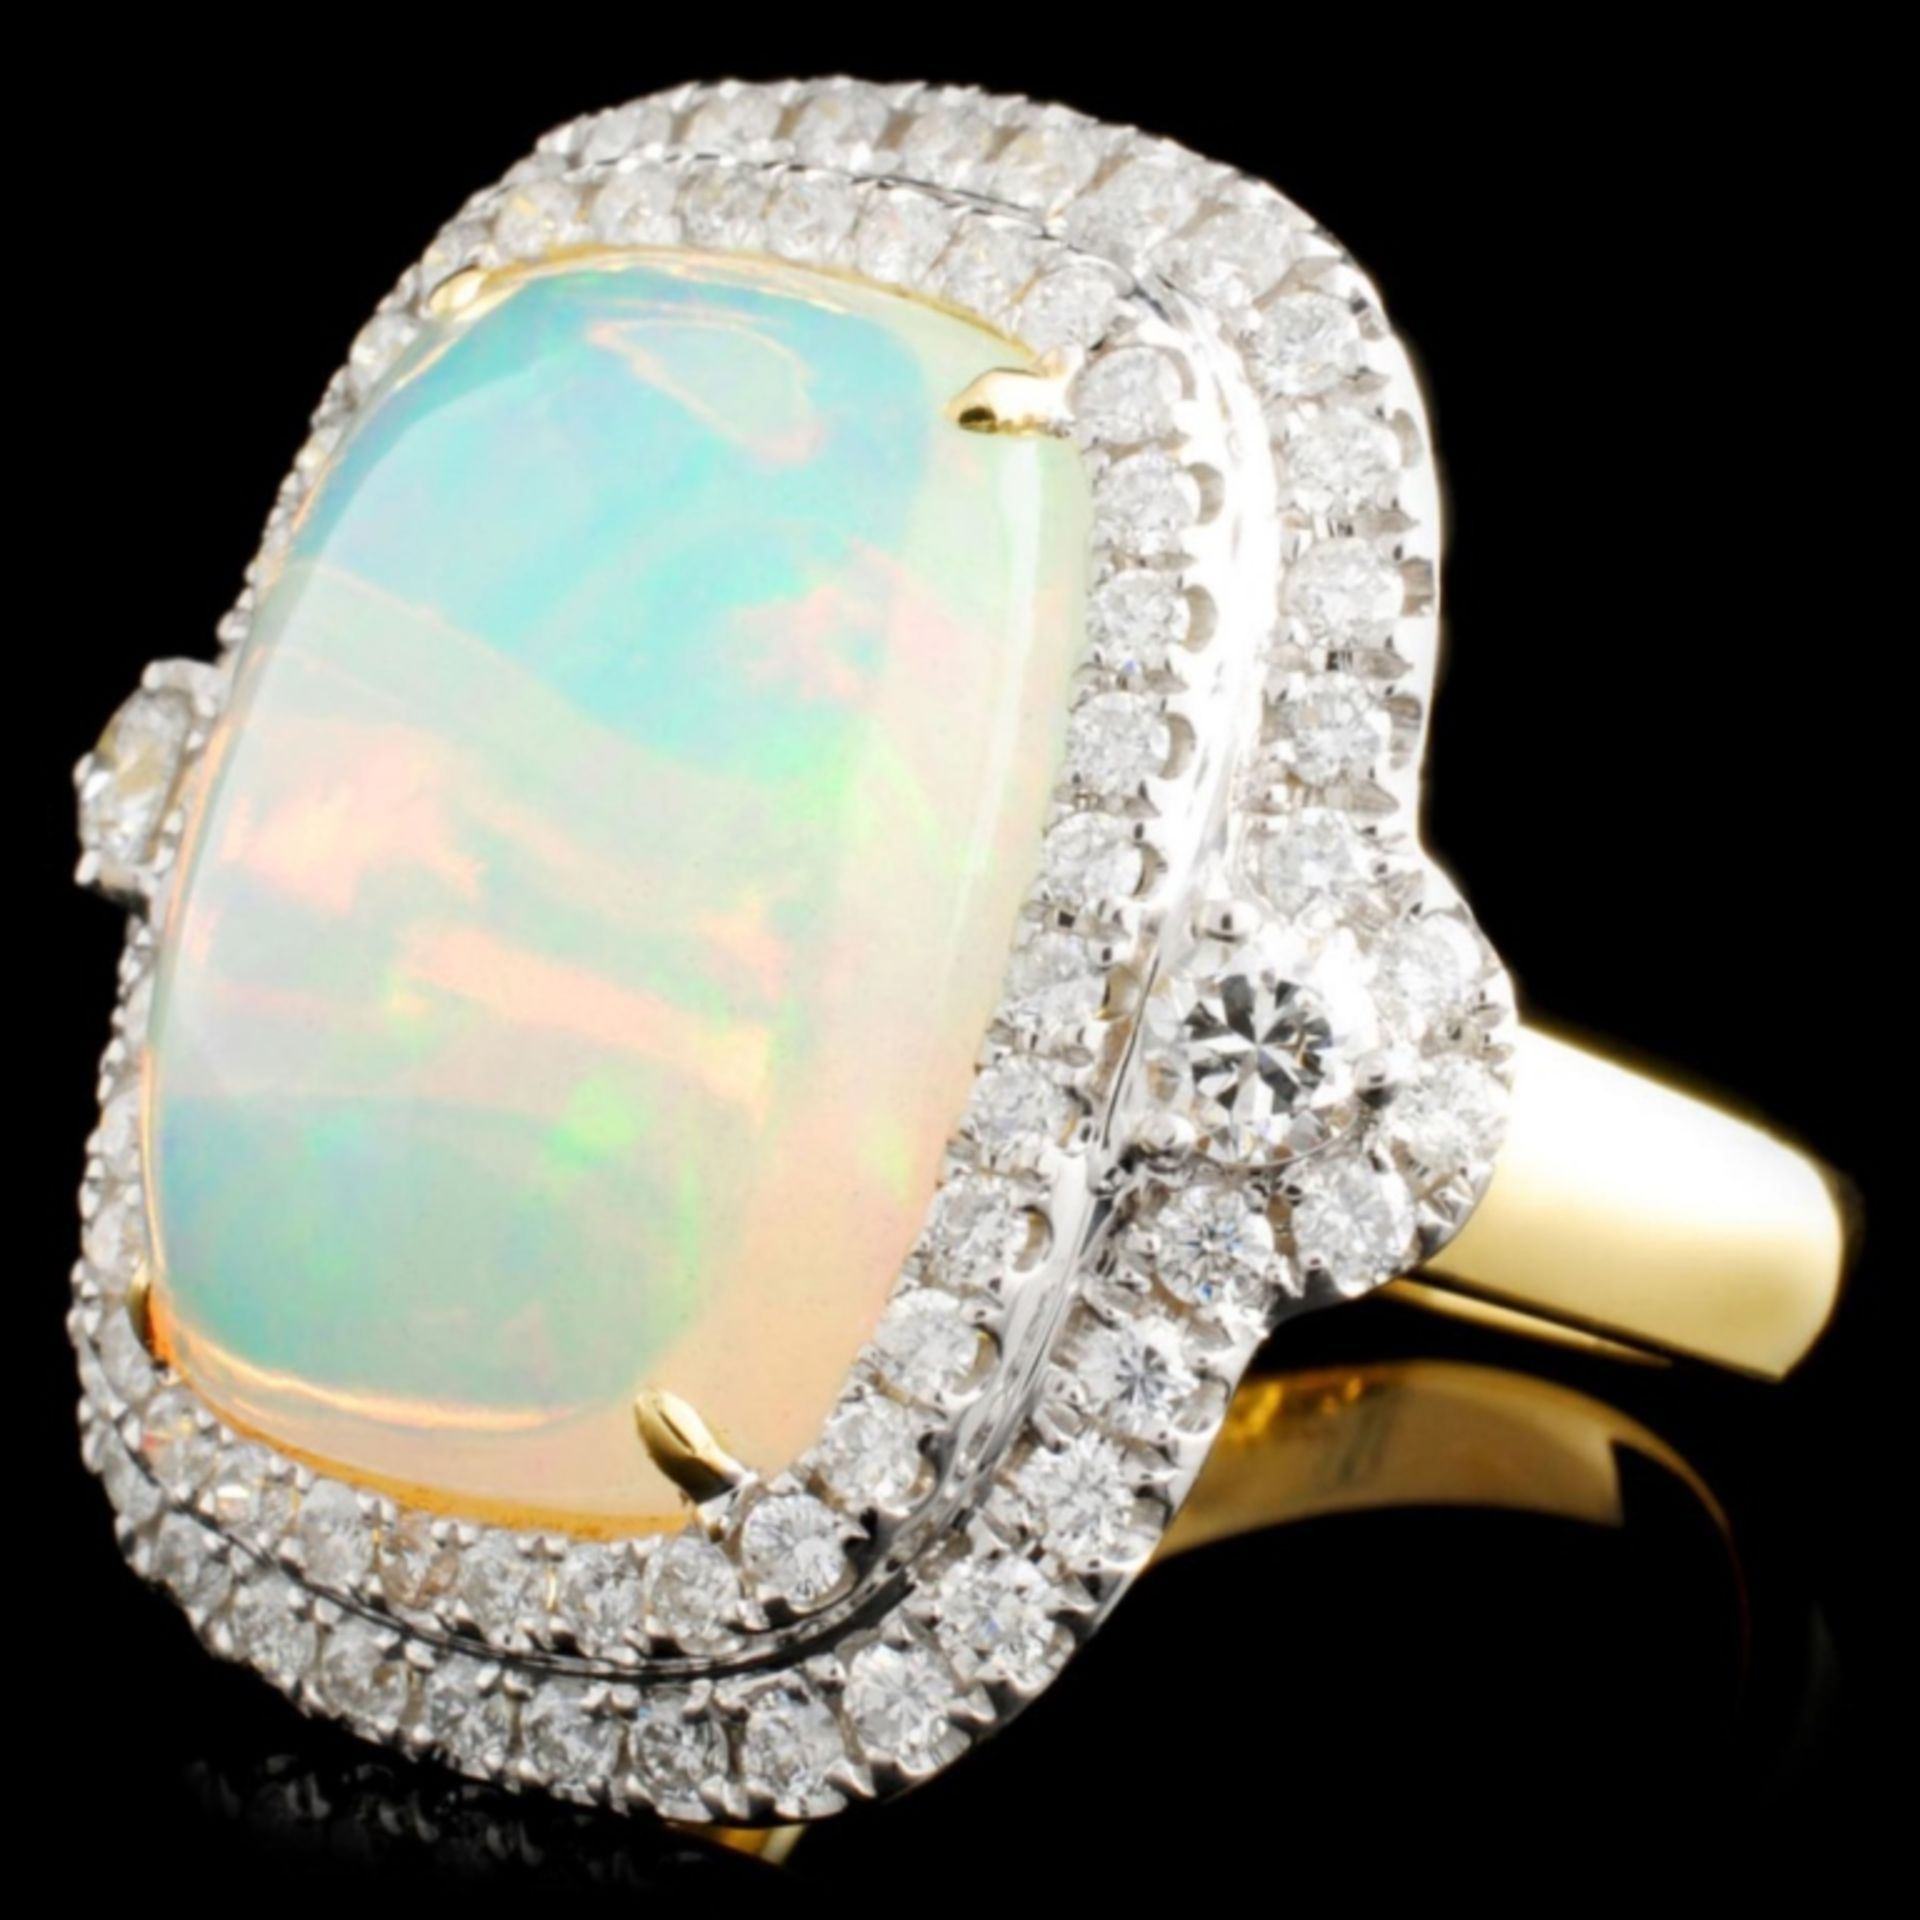 18K Gold 8.34ct Opal & 1.30ctw Diamond Ring - Image 2 of 5